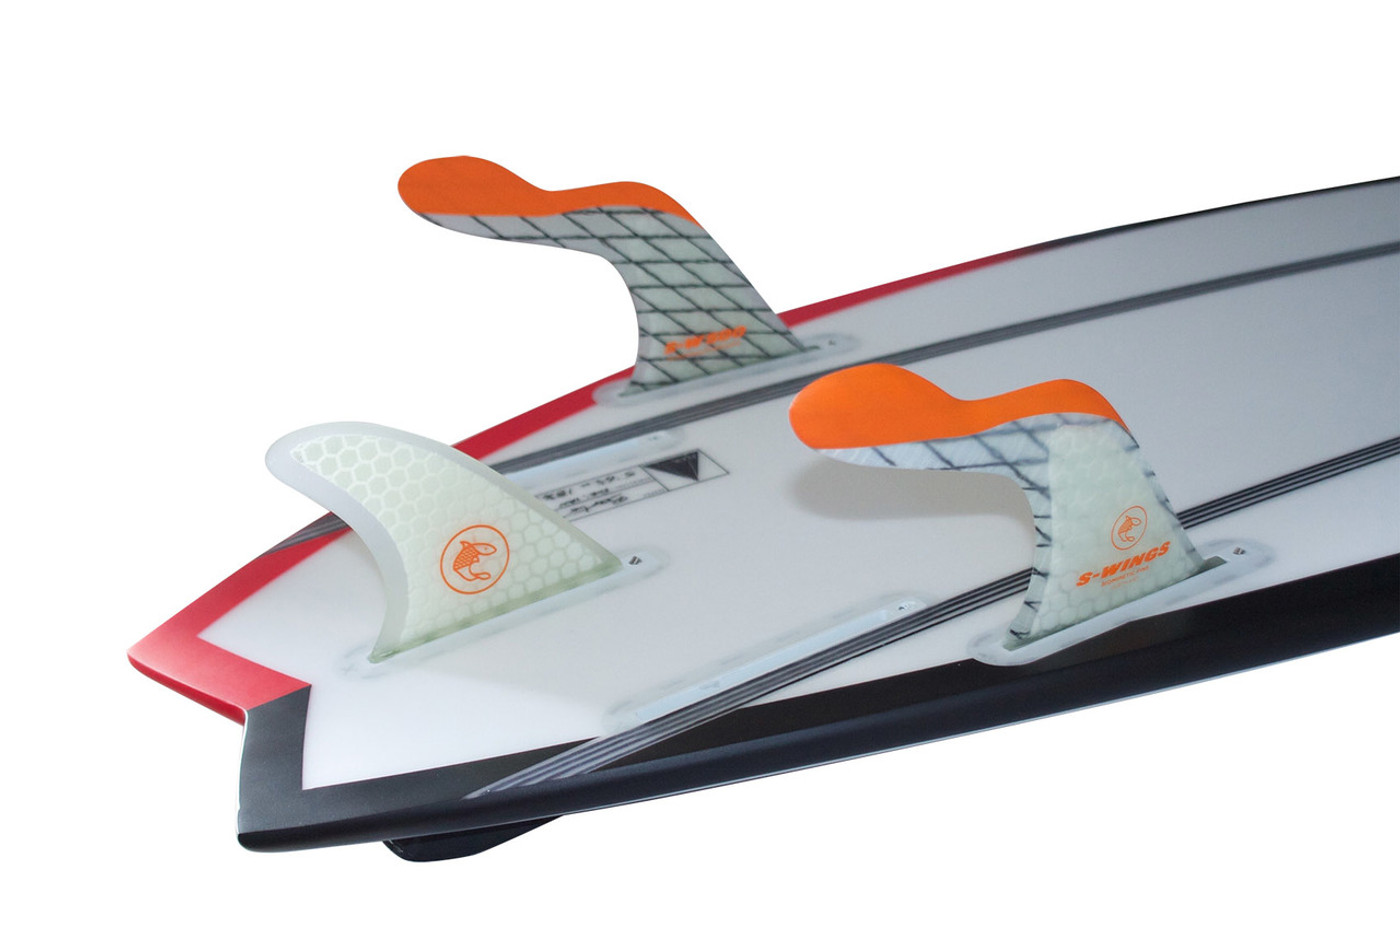 S Wings SW 500 Orange Thruster Fins For FCS Boxes - also works great with quads and as a 5 fin.